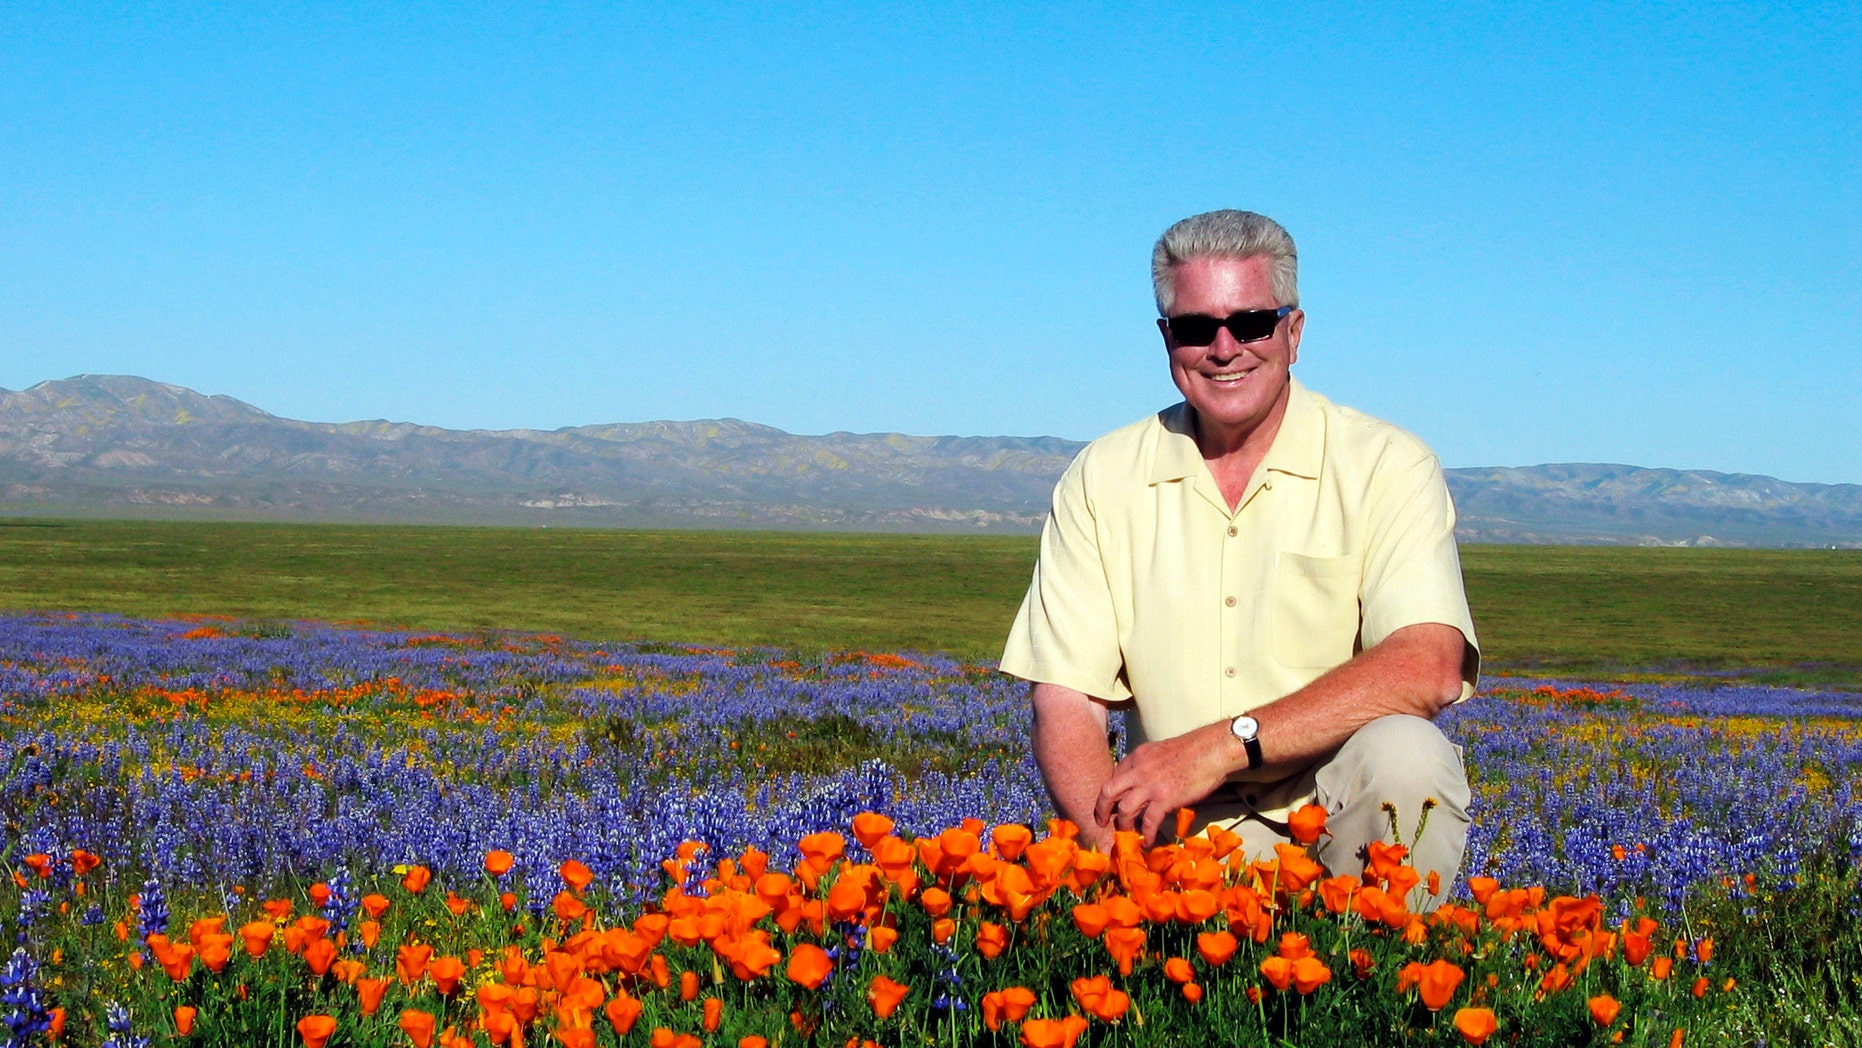 2005 FILE: TV host Huell Howser poses for a photo at the Antelope Valley California Poppy Reserve in Lancster, Calif.